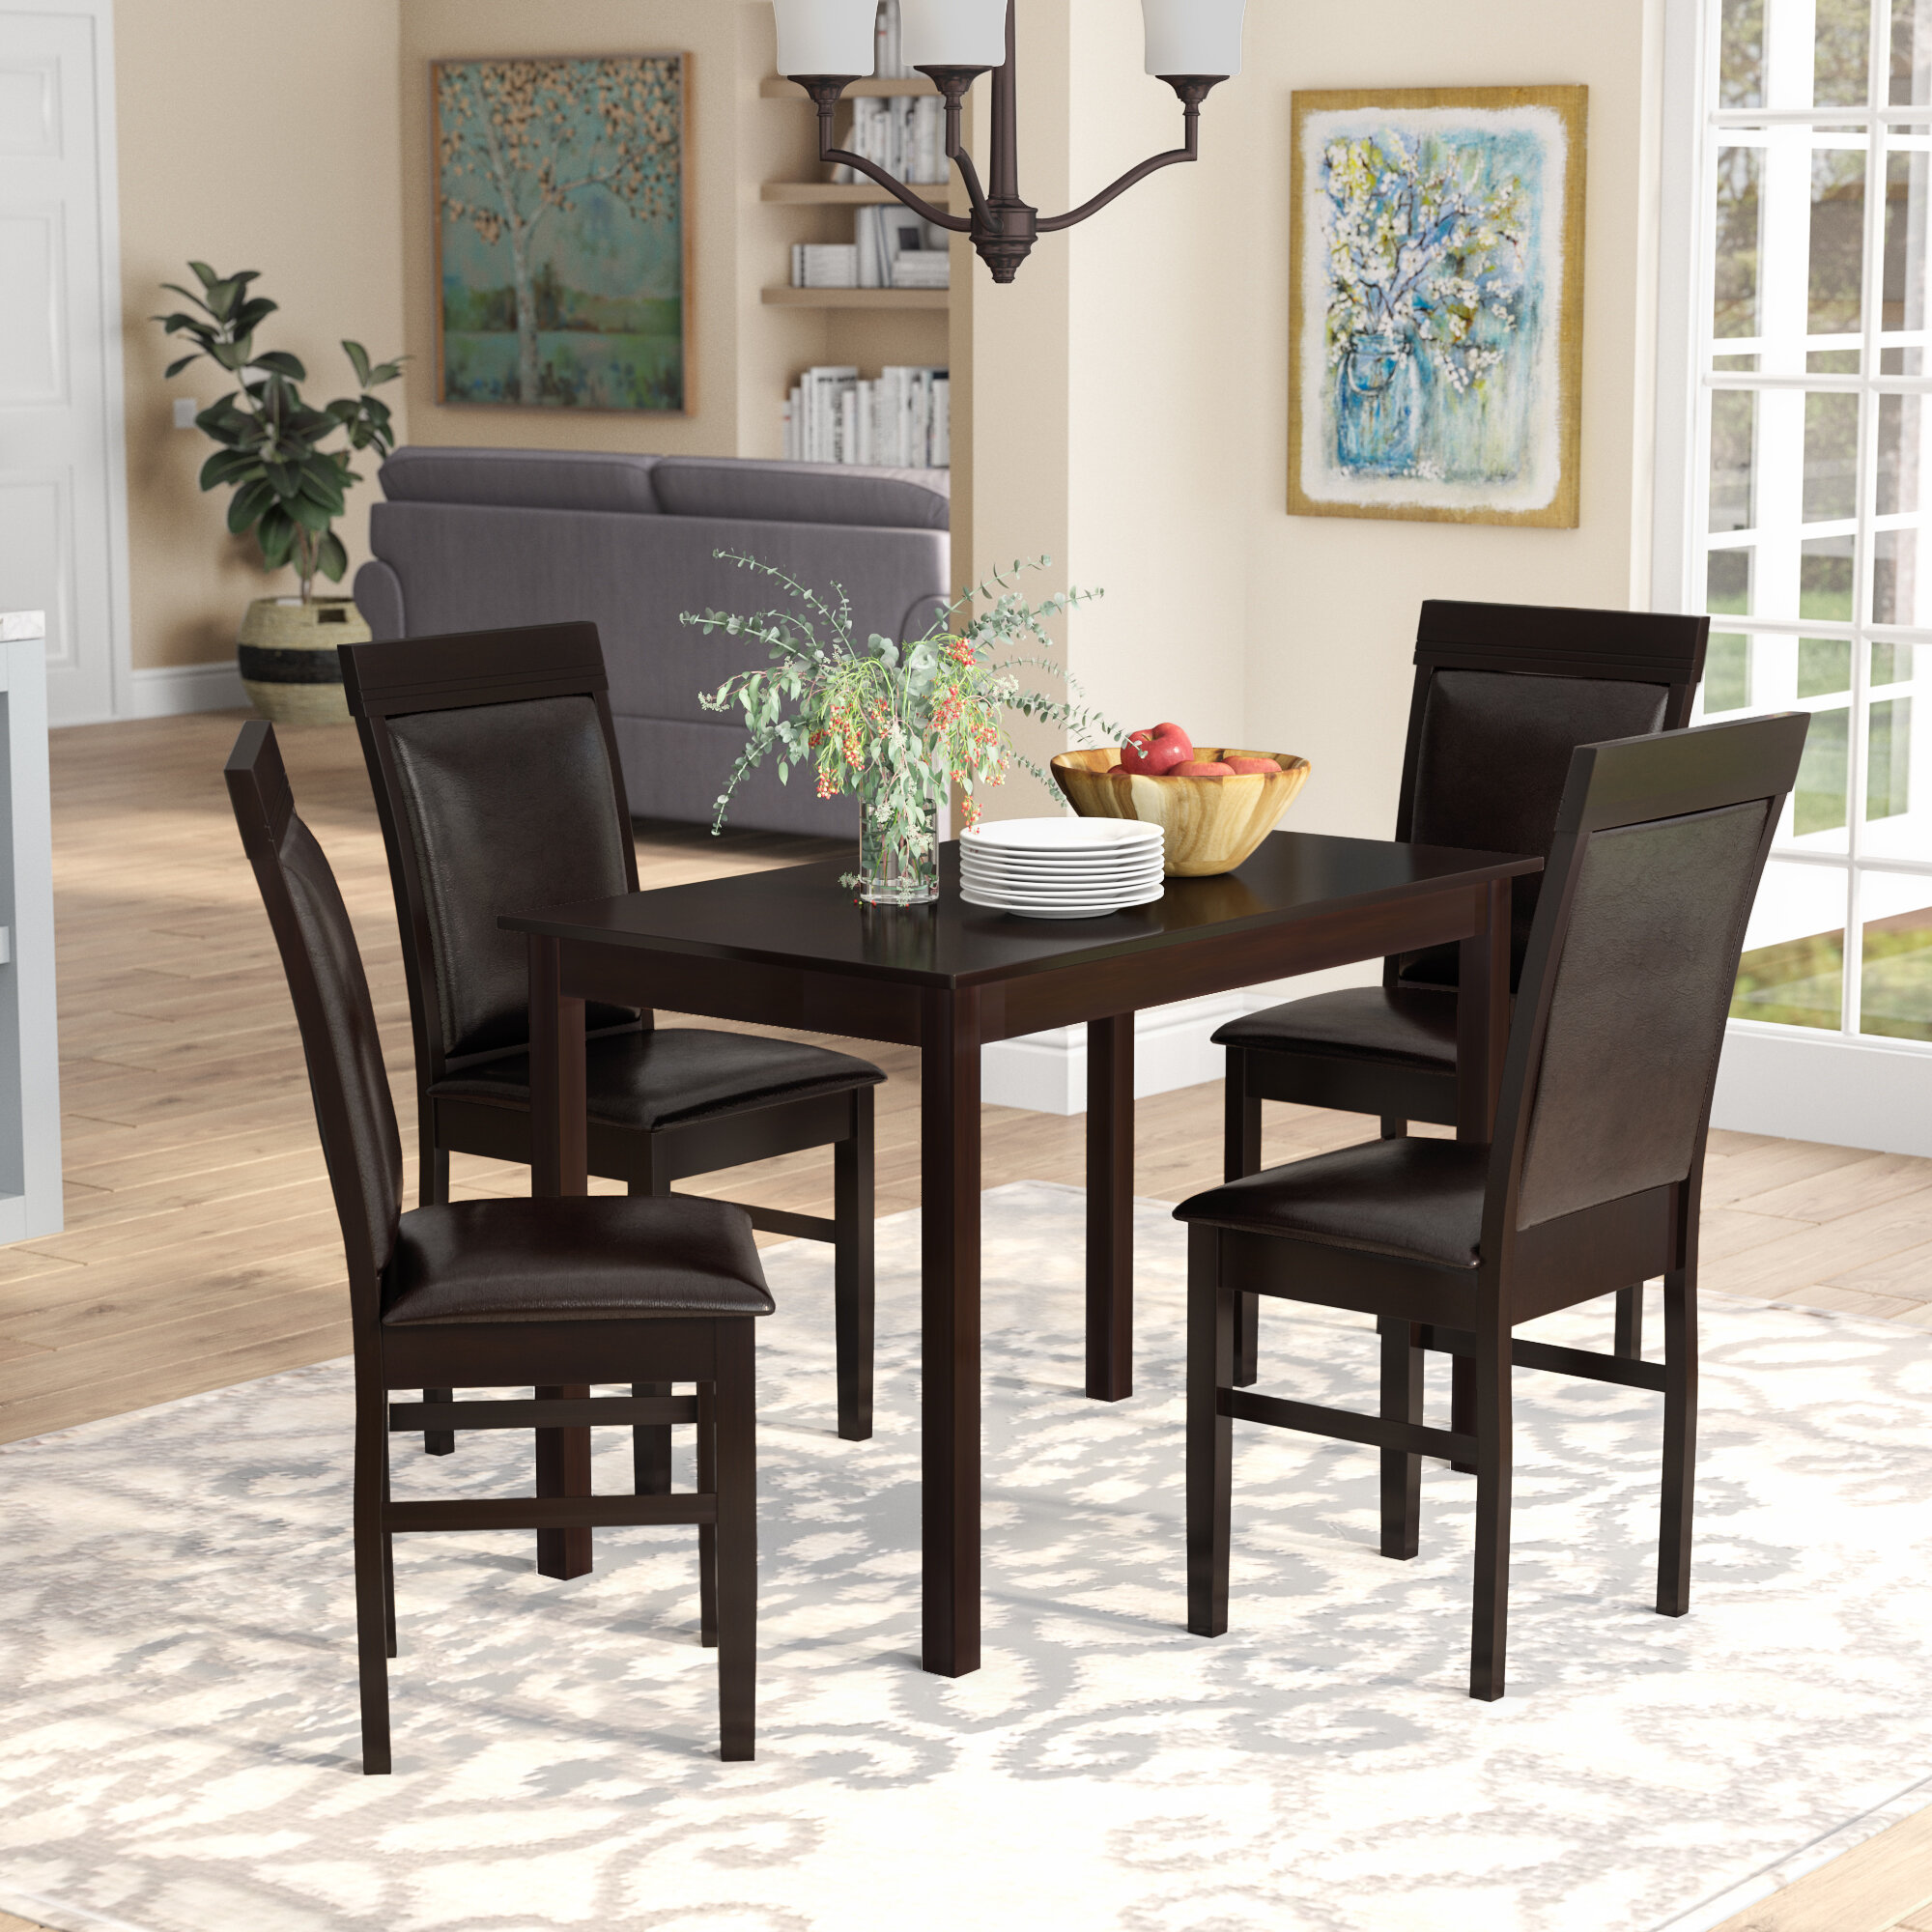 Red Barrel Studio Kisor Modern And Contemporary 5 Piece Breakfast Nook Dining Set Reviews Wayfair